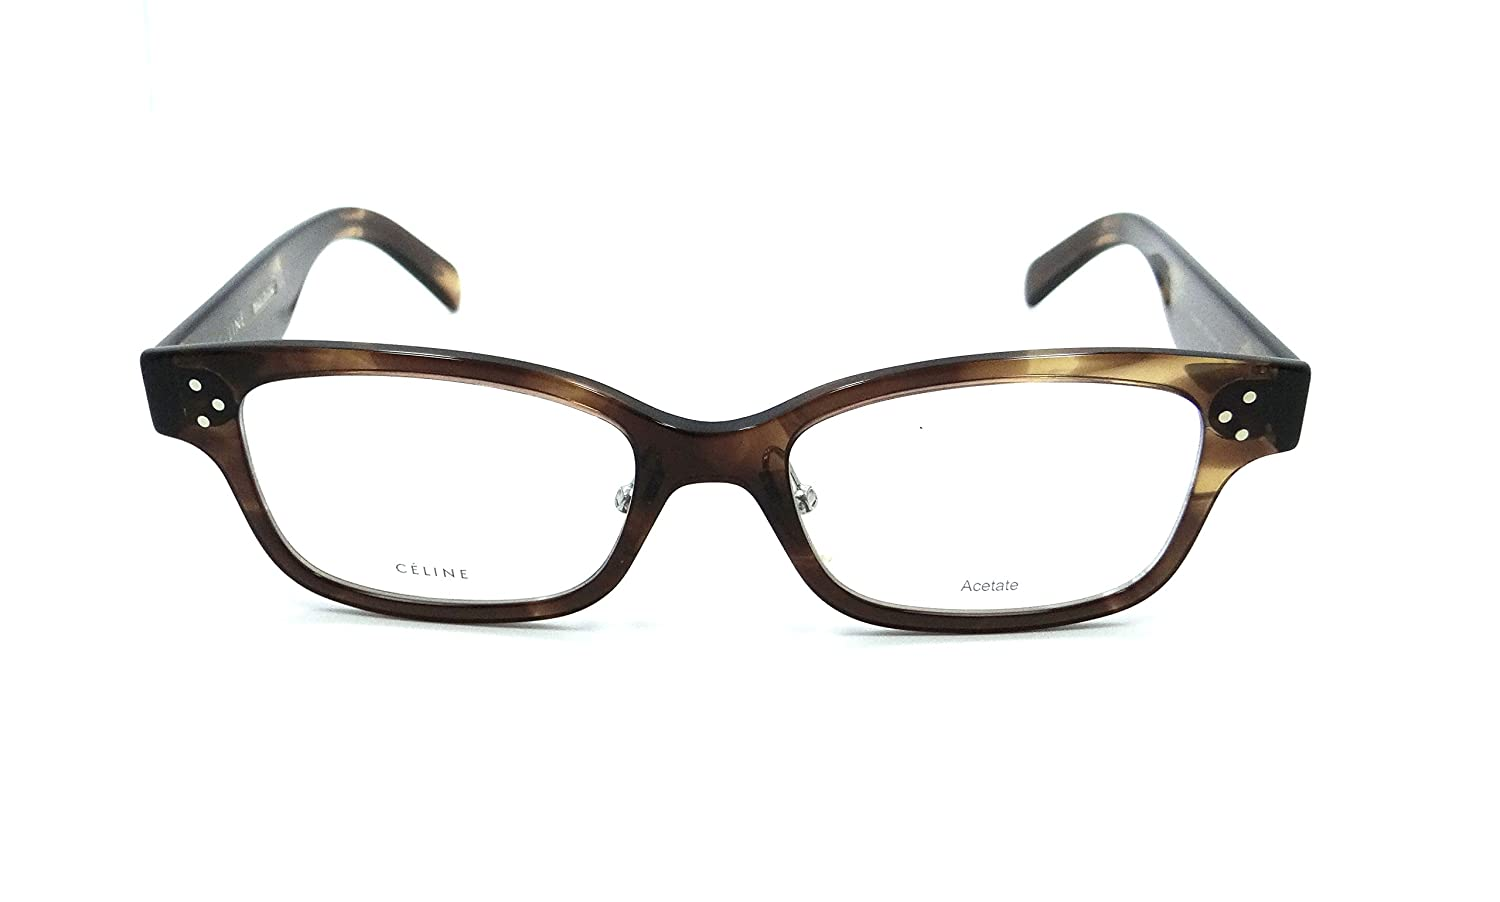 e46ad0db00 Celine Rx Eyeglasses Frames CL 41438 F 07B 52-18-150 Havana Brown Asian Fit  at Amazon Women s Clothing store